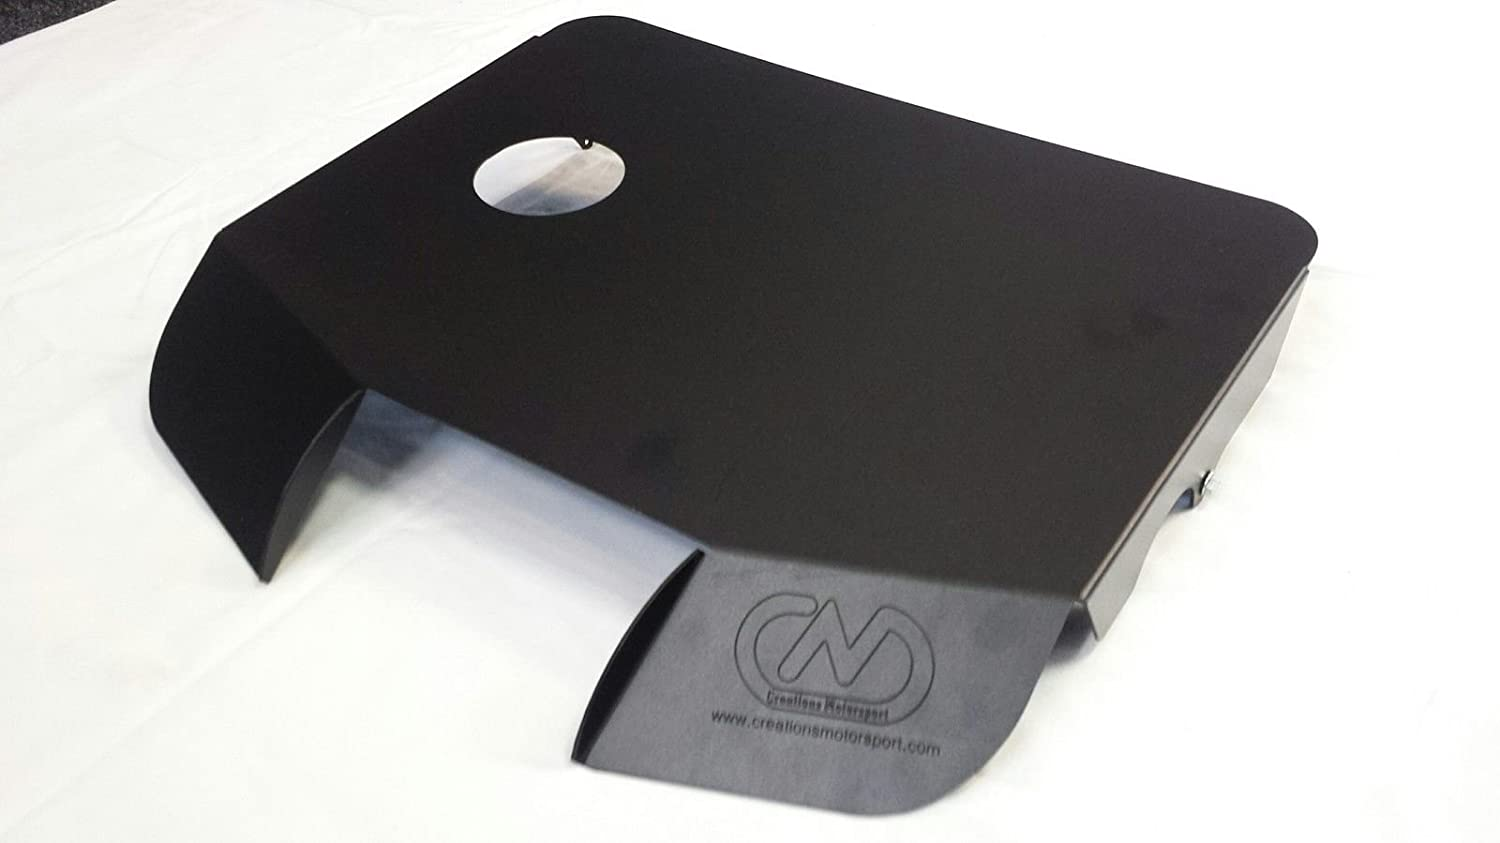 Engine Cover For Induction Kit - None Writing- AL0103 CREATIONS